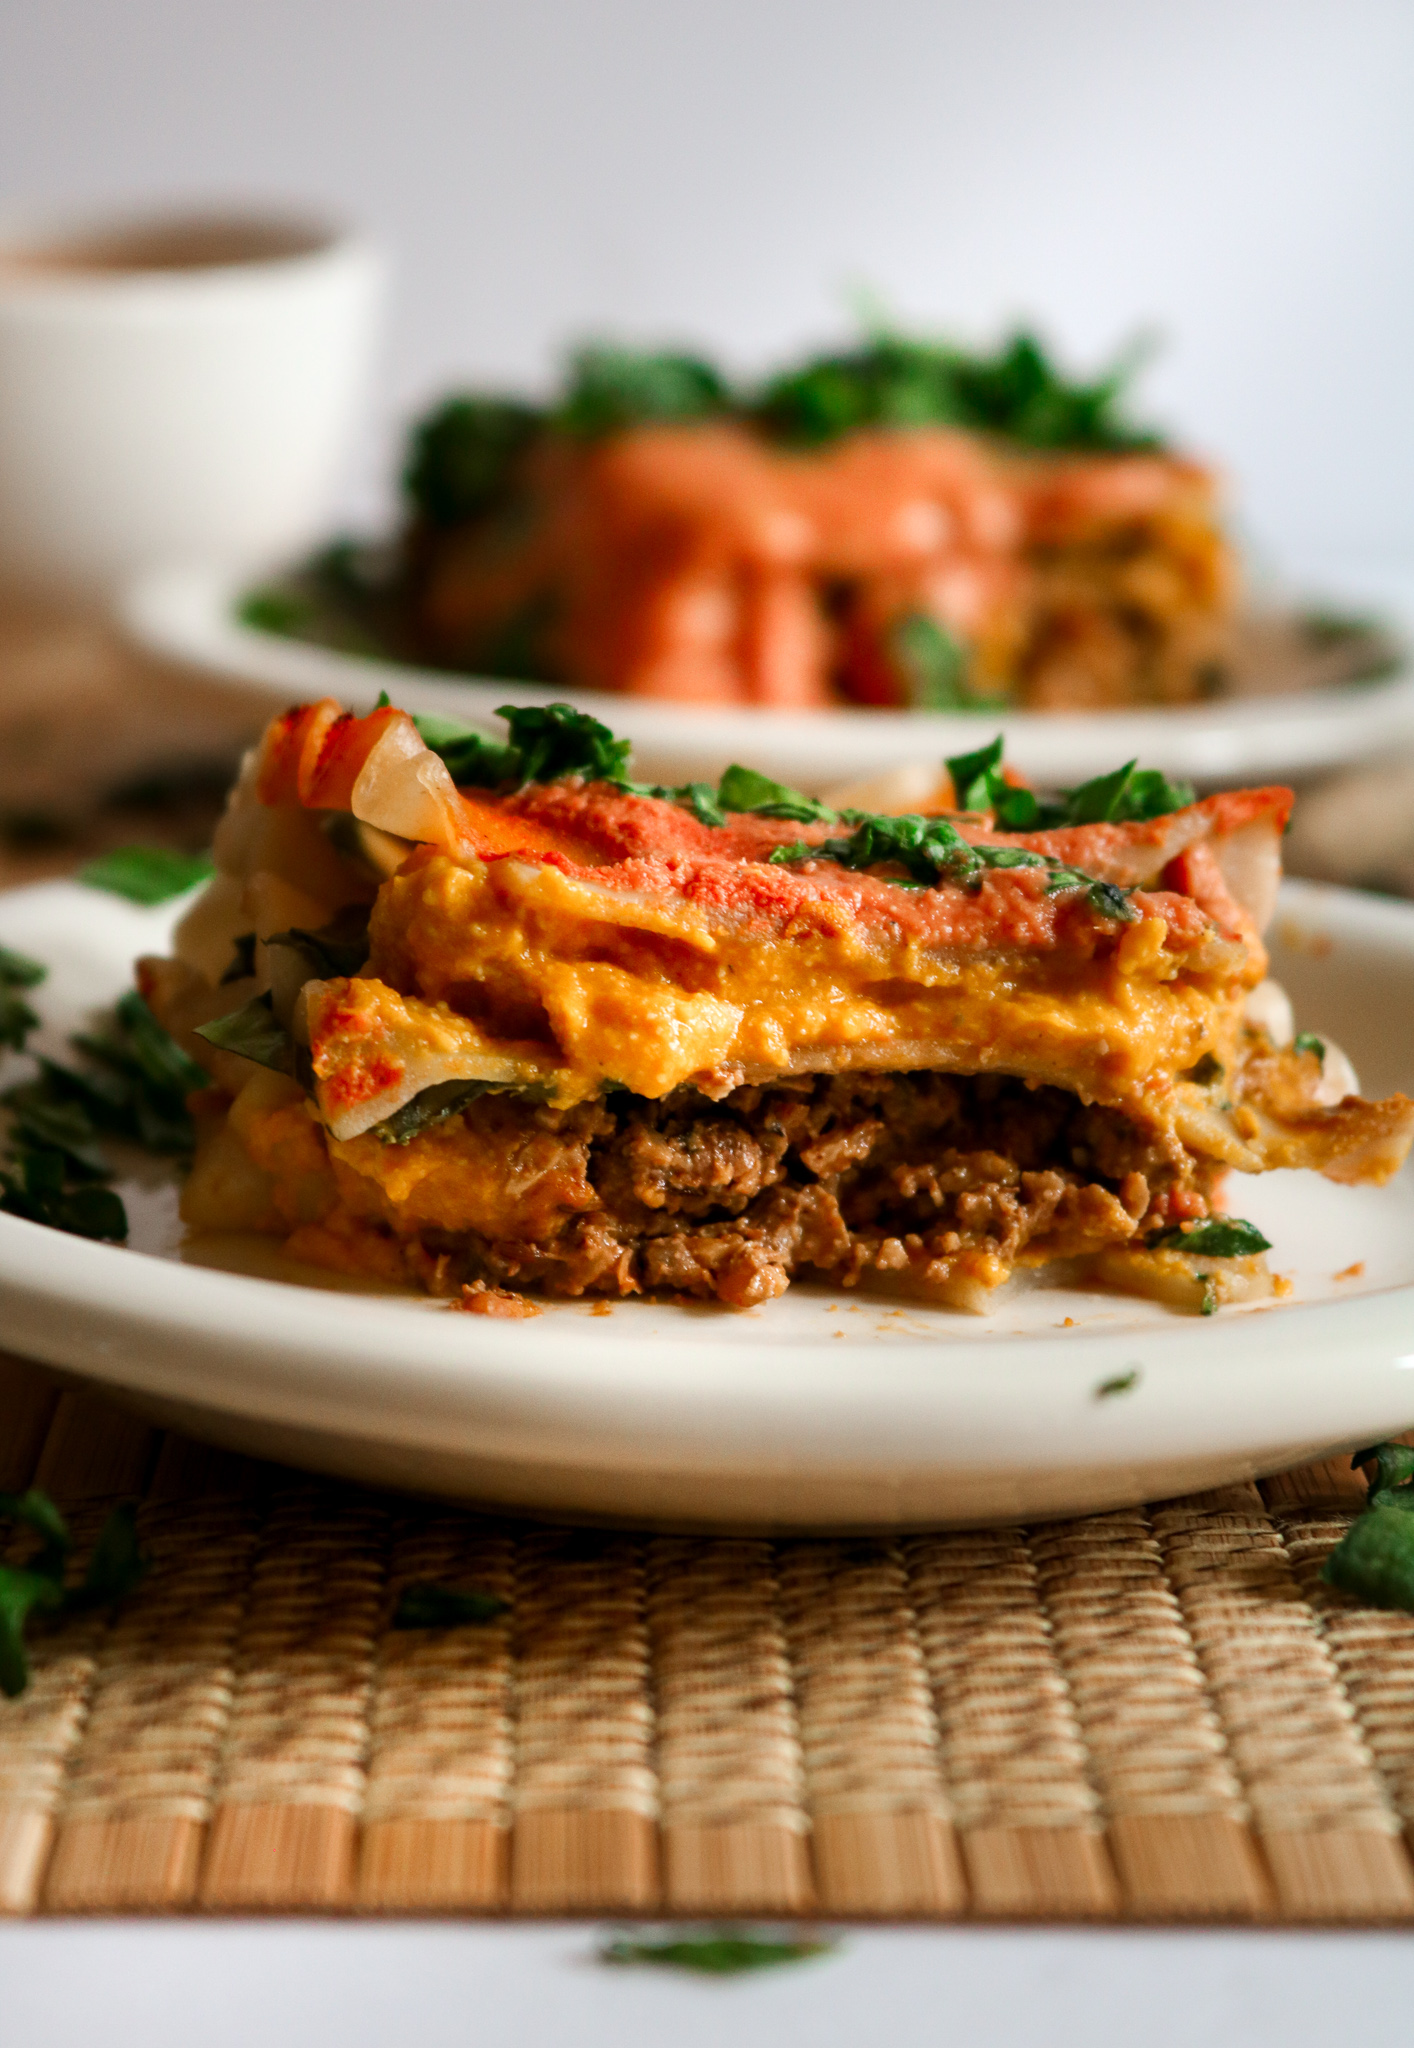 This Vegan Tikka Masala Lasagna is pure comfort food! All the things you love about traditional lasagna but with an Indian-inspired flavor that will knock you off your feet! Easy to make and freezer friendly too! // plantpowercouple.com